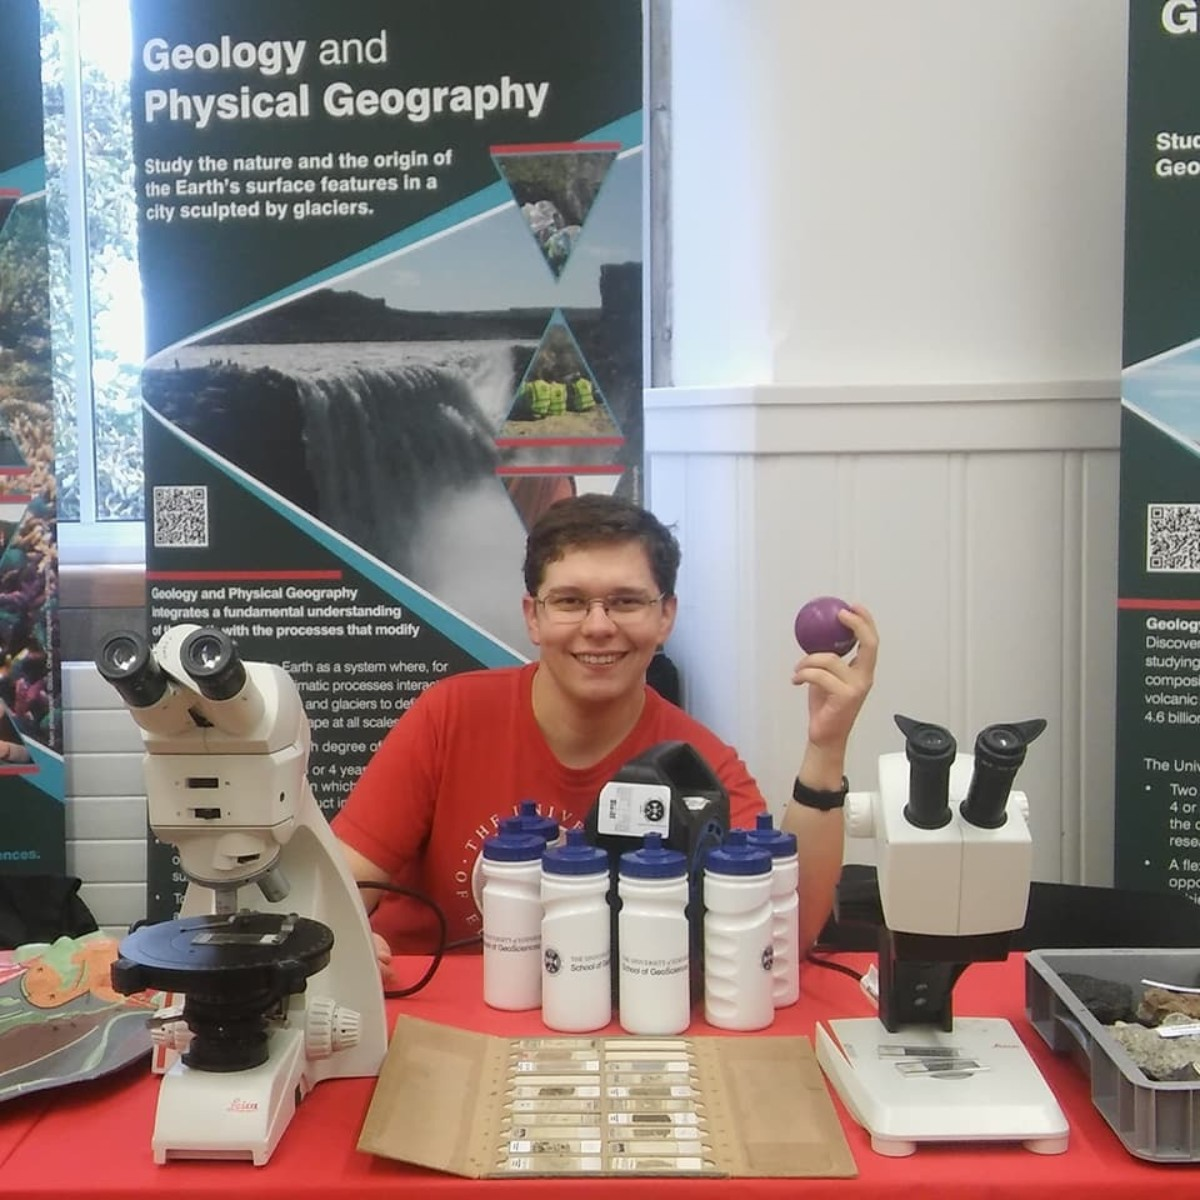 Do the GeoSciences rock your world? Check out the Angus and Dundee GeoSciences Society!